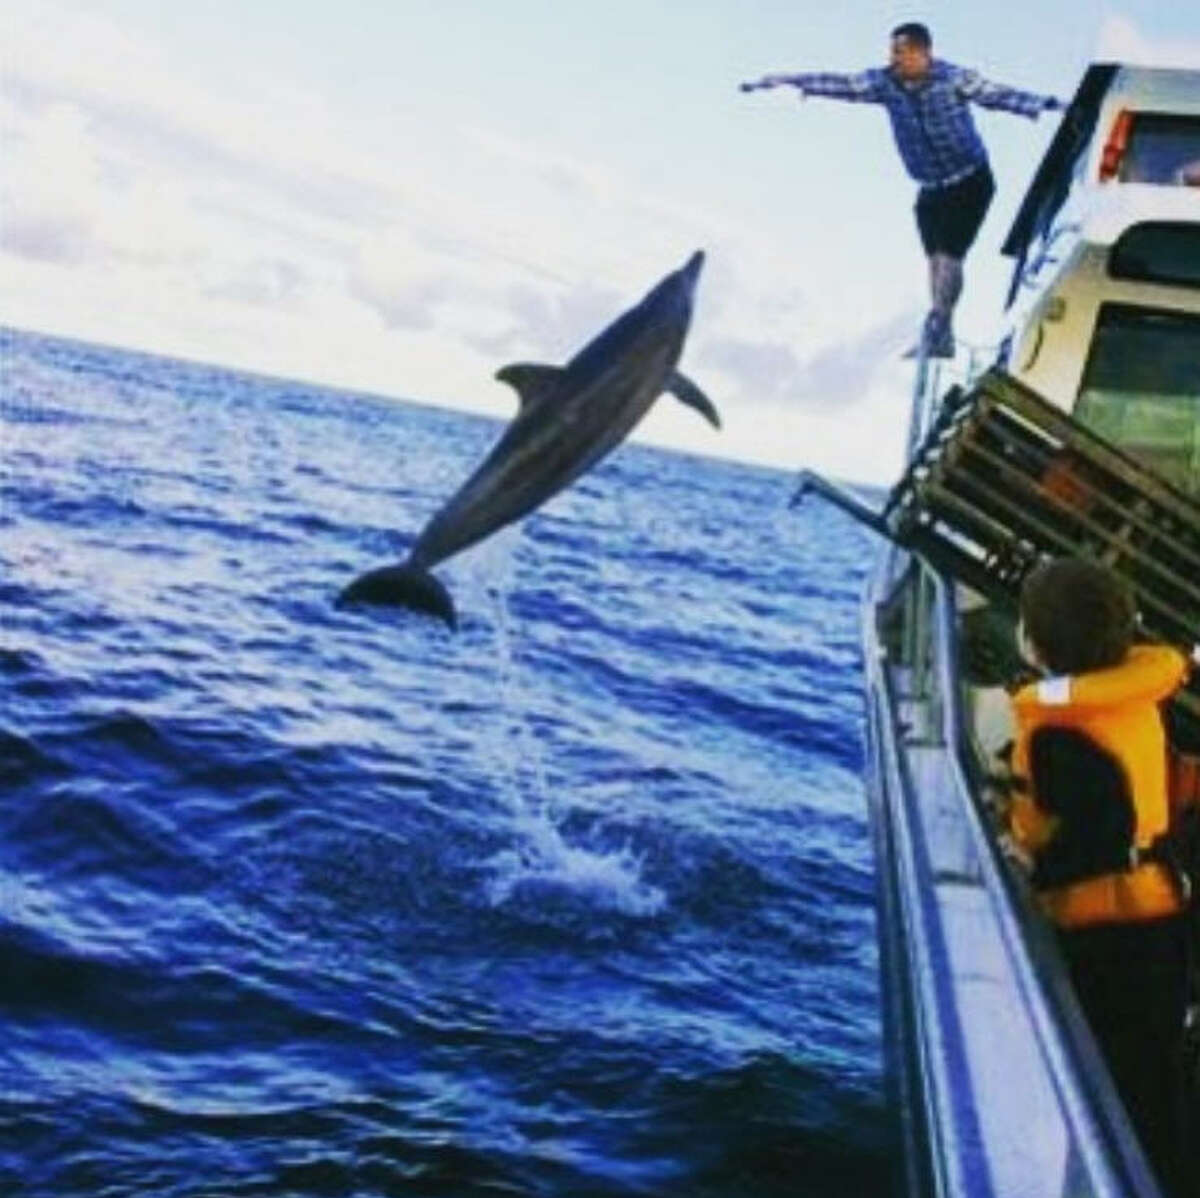 Deep sea fishing off the coast of Western Australia with Reel Force Charters is not for the faint of heart.